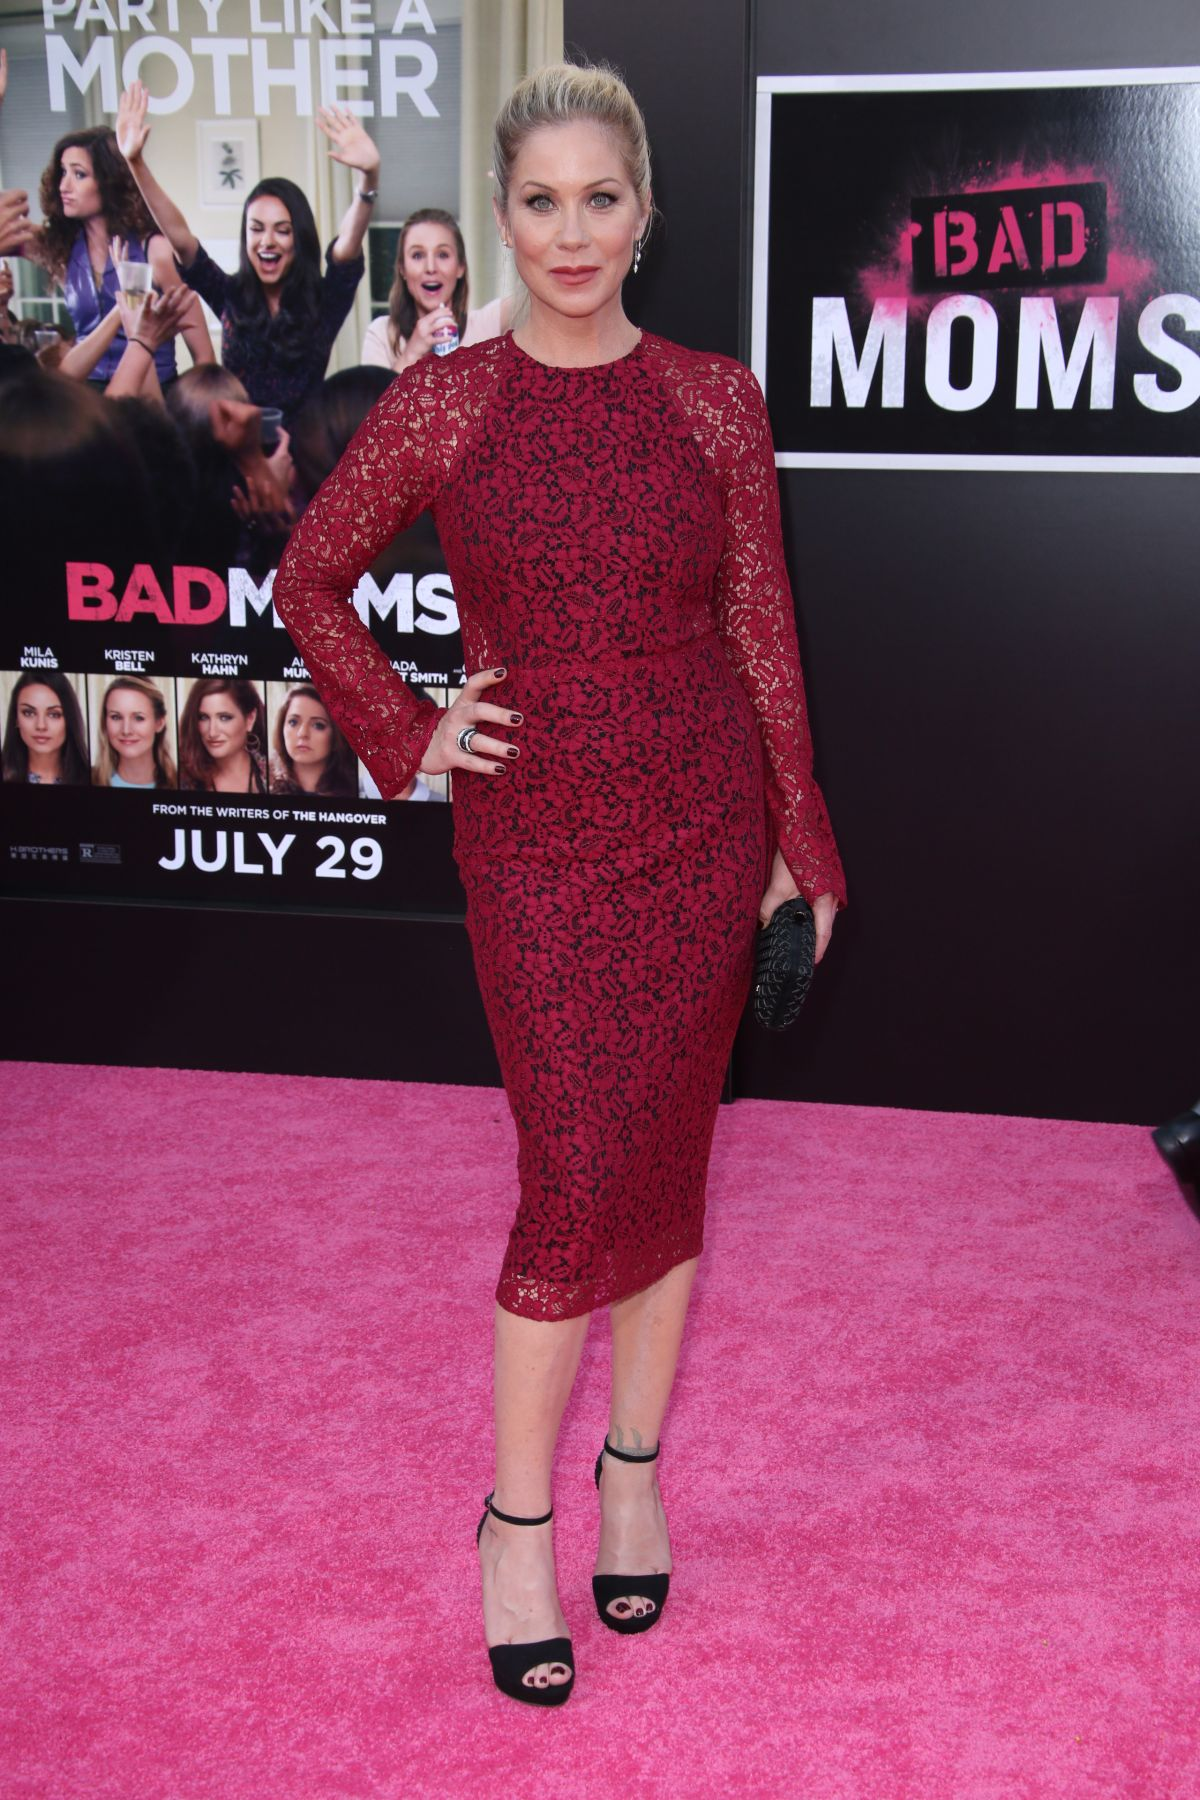 CHRISTINA APPLEGATE at 'Bad Moms' Premiere in Los Angeles 07/26/2016